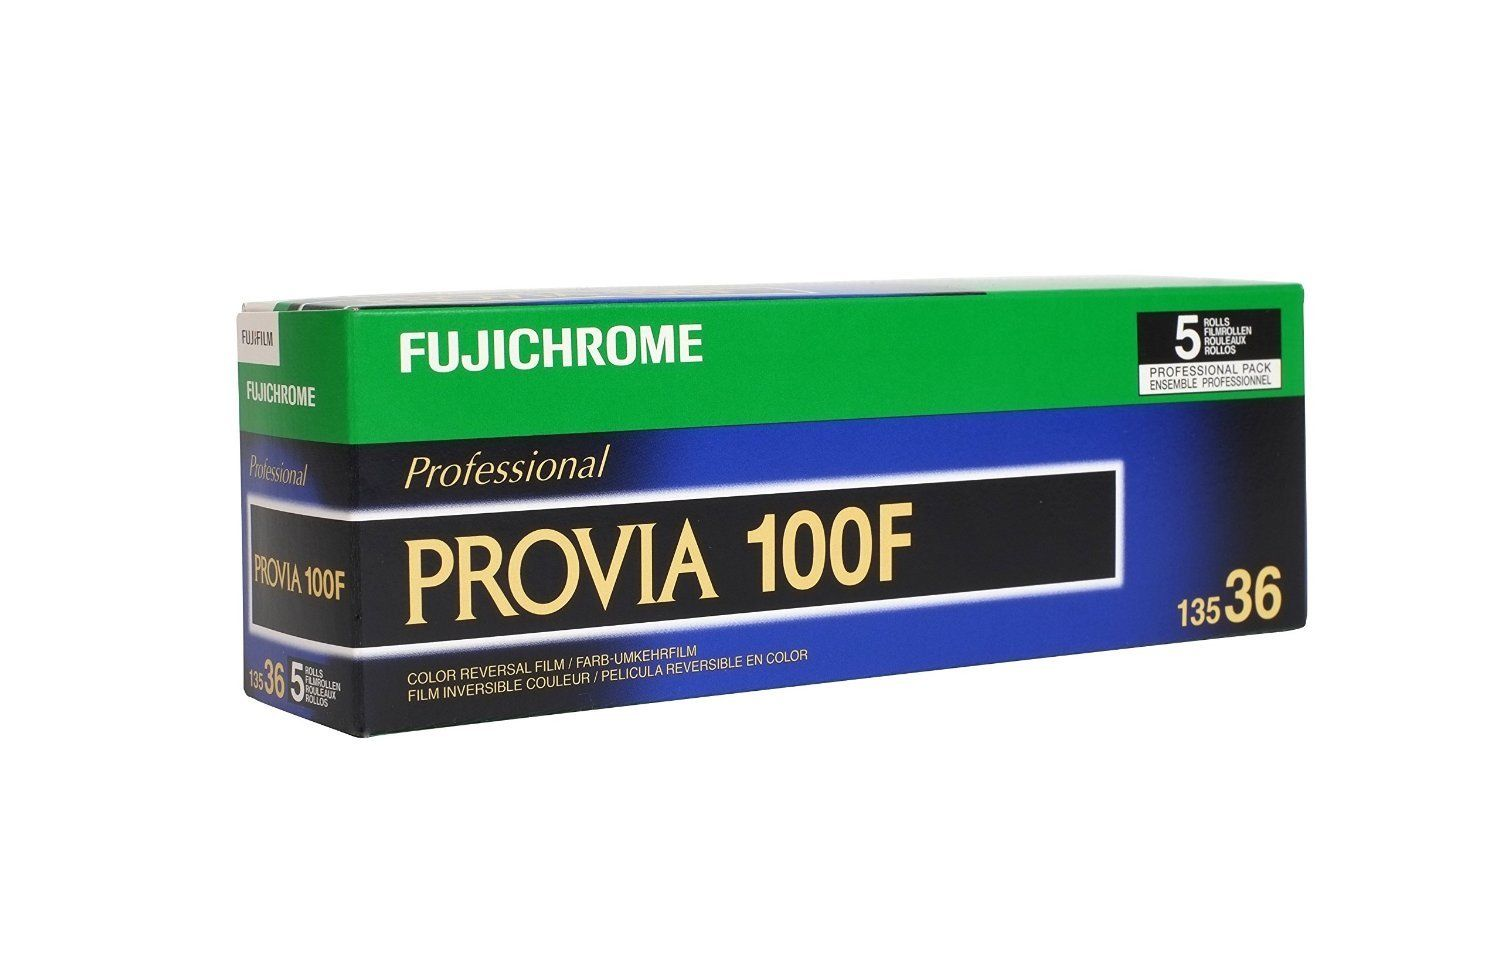 20 Rolls FujiFilm FujiChrome Provia RDP 100F 135-36 Color Slide Film 5 2018 by Fujifilm